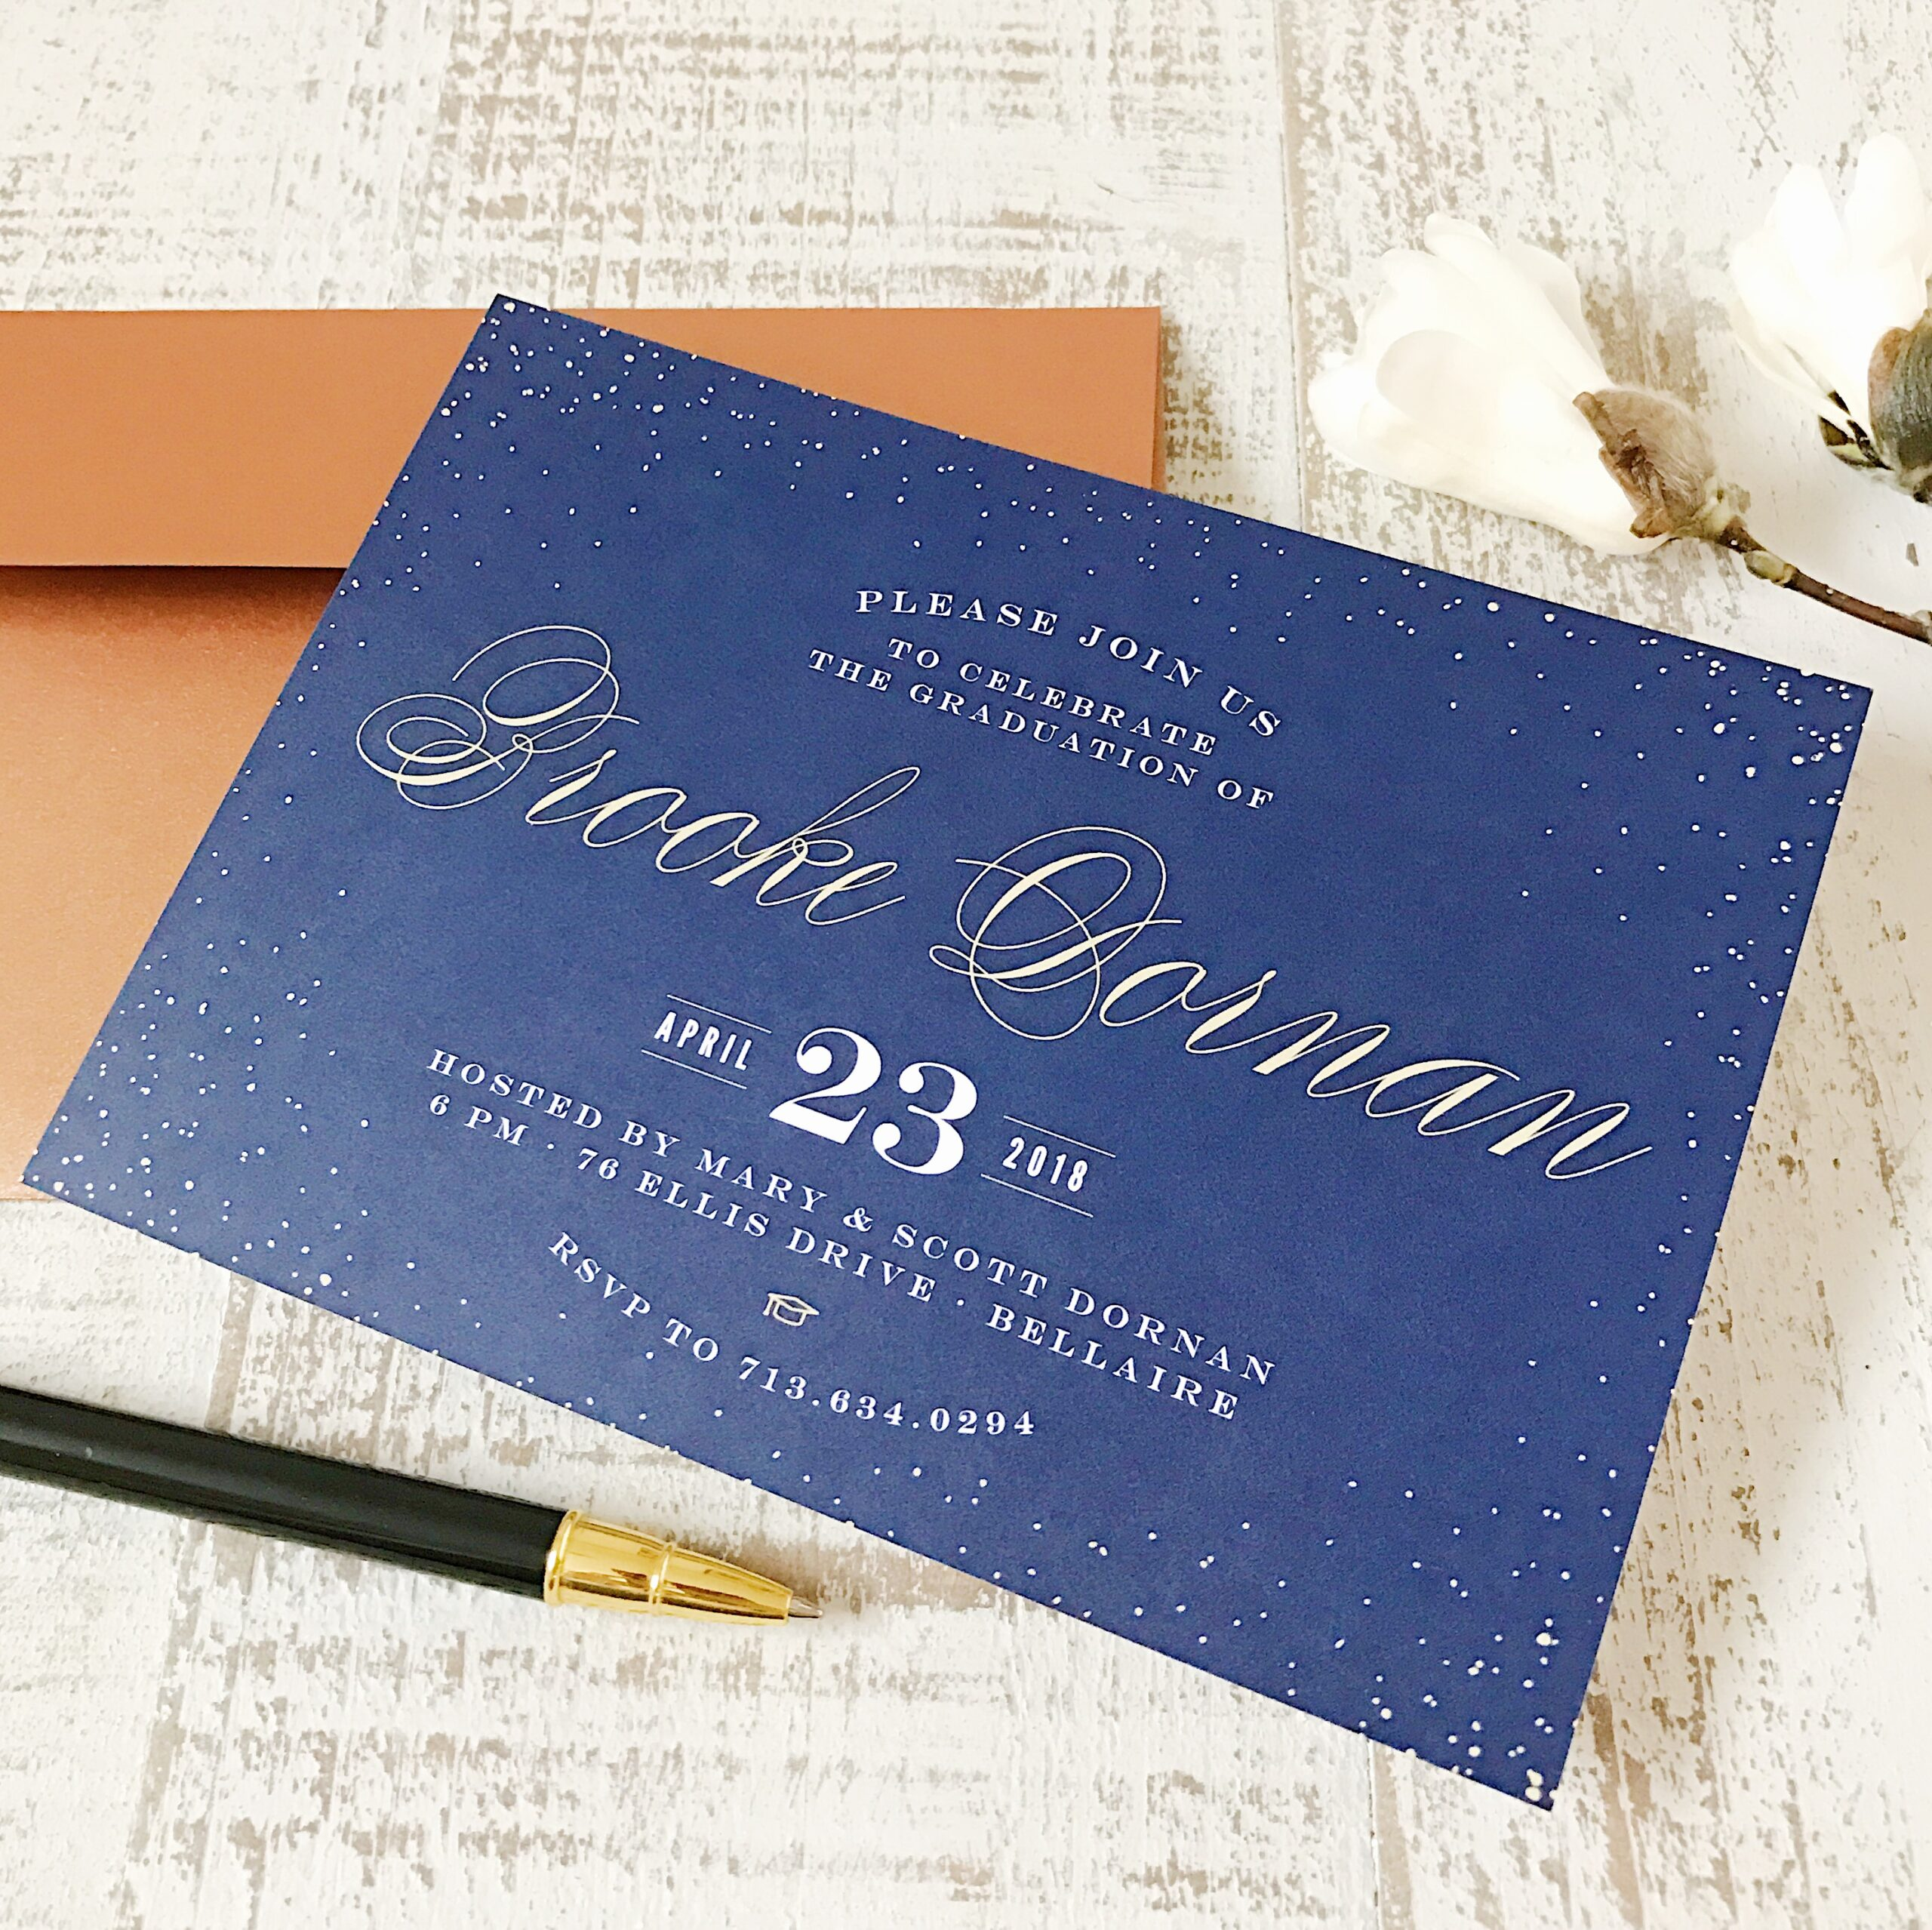 Blue Graduation Invite with white words.